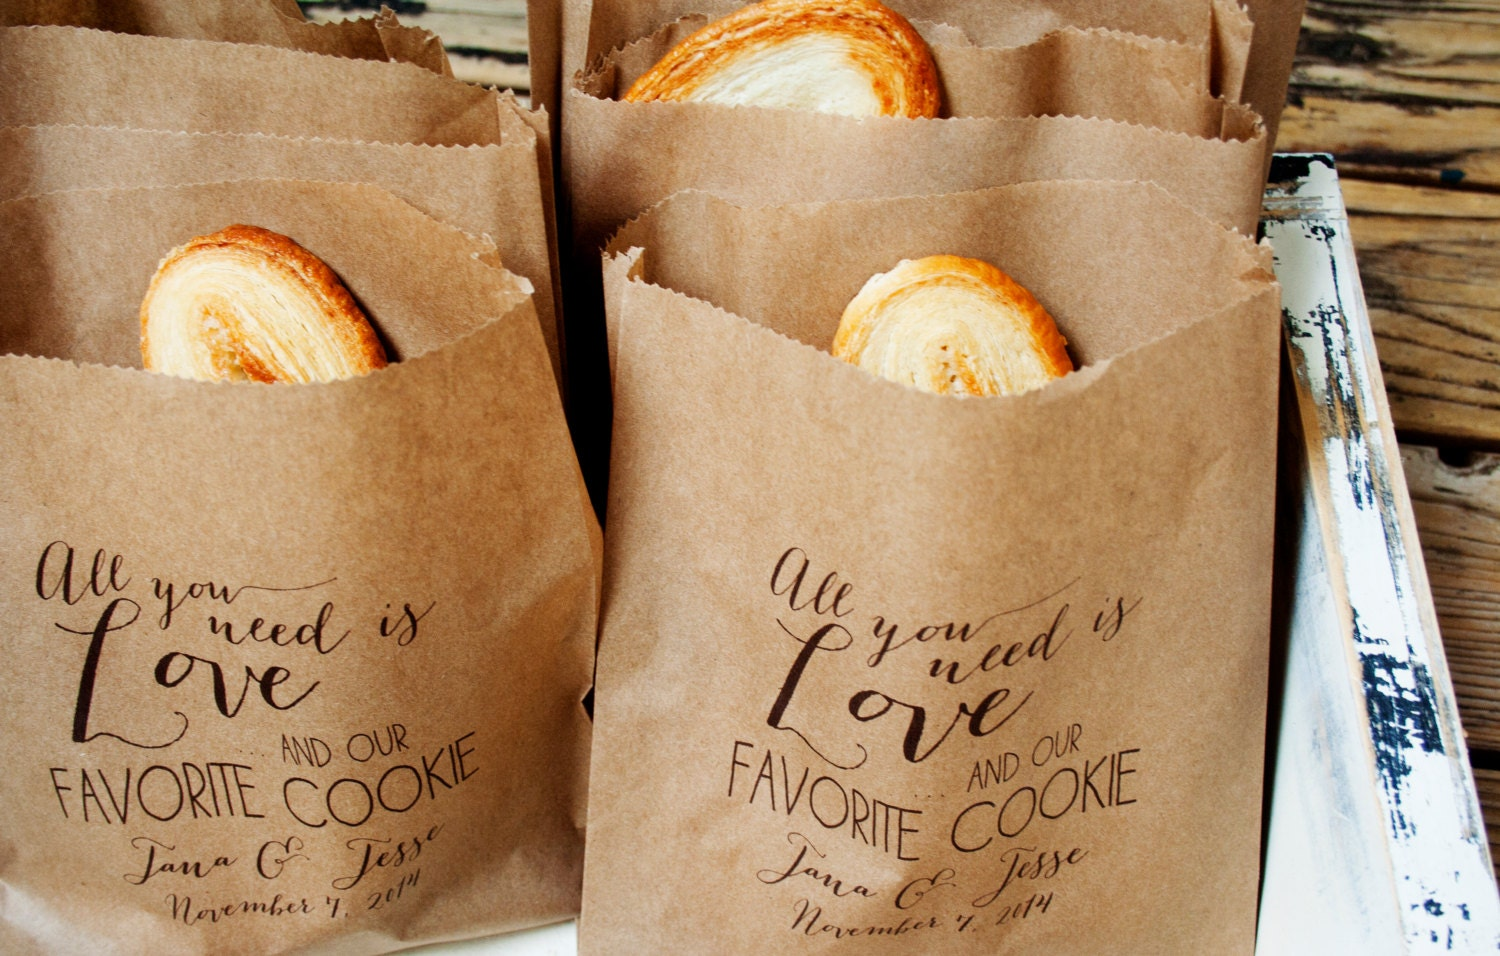 Cookie Favor Bag Wedding Cookie Treat Bag Love And By Mavora